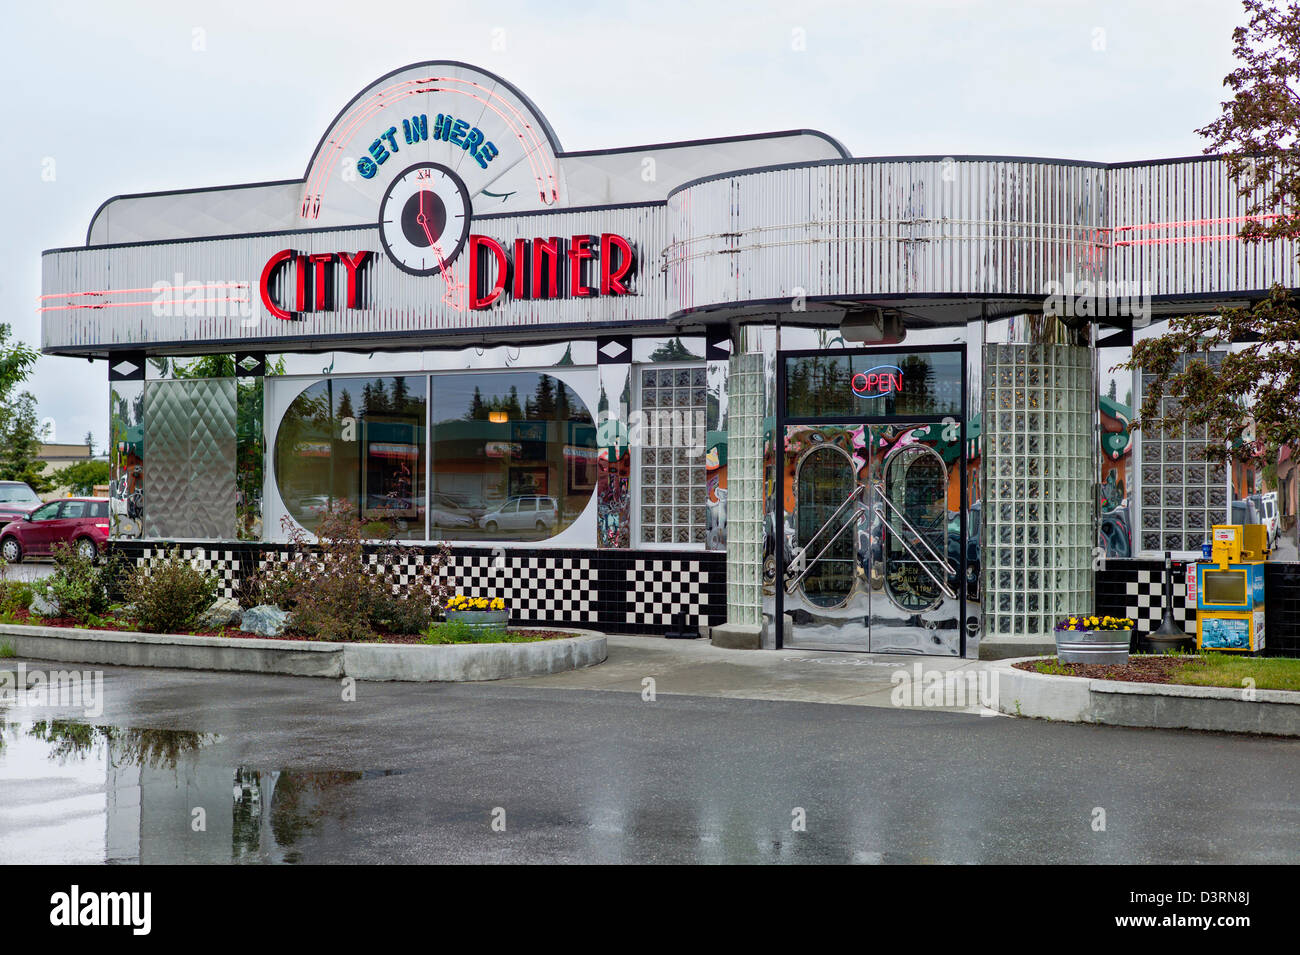 exterior view of retro design stainless steel city diner anchorage stock photo royalty free. Black Bedroom Furniture Sets. Home Design Ideas